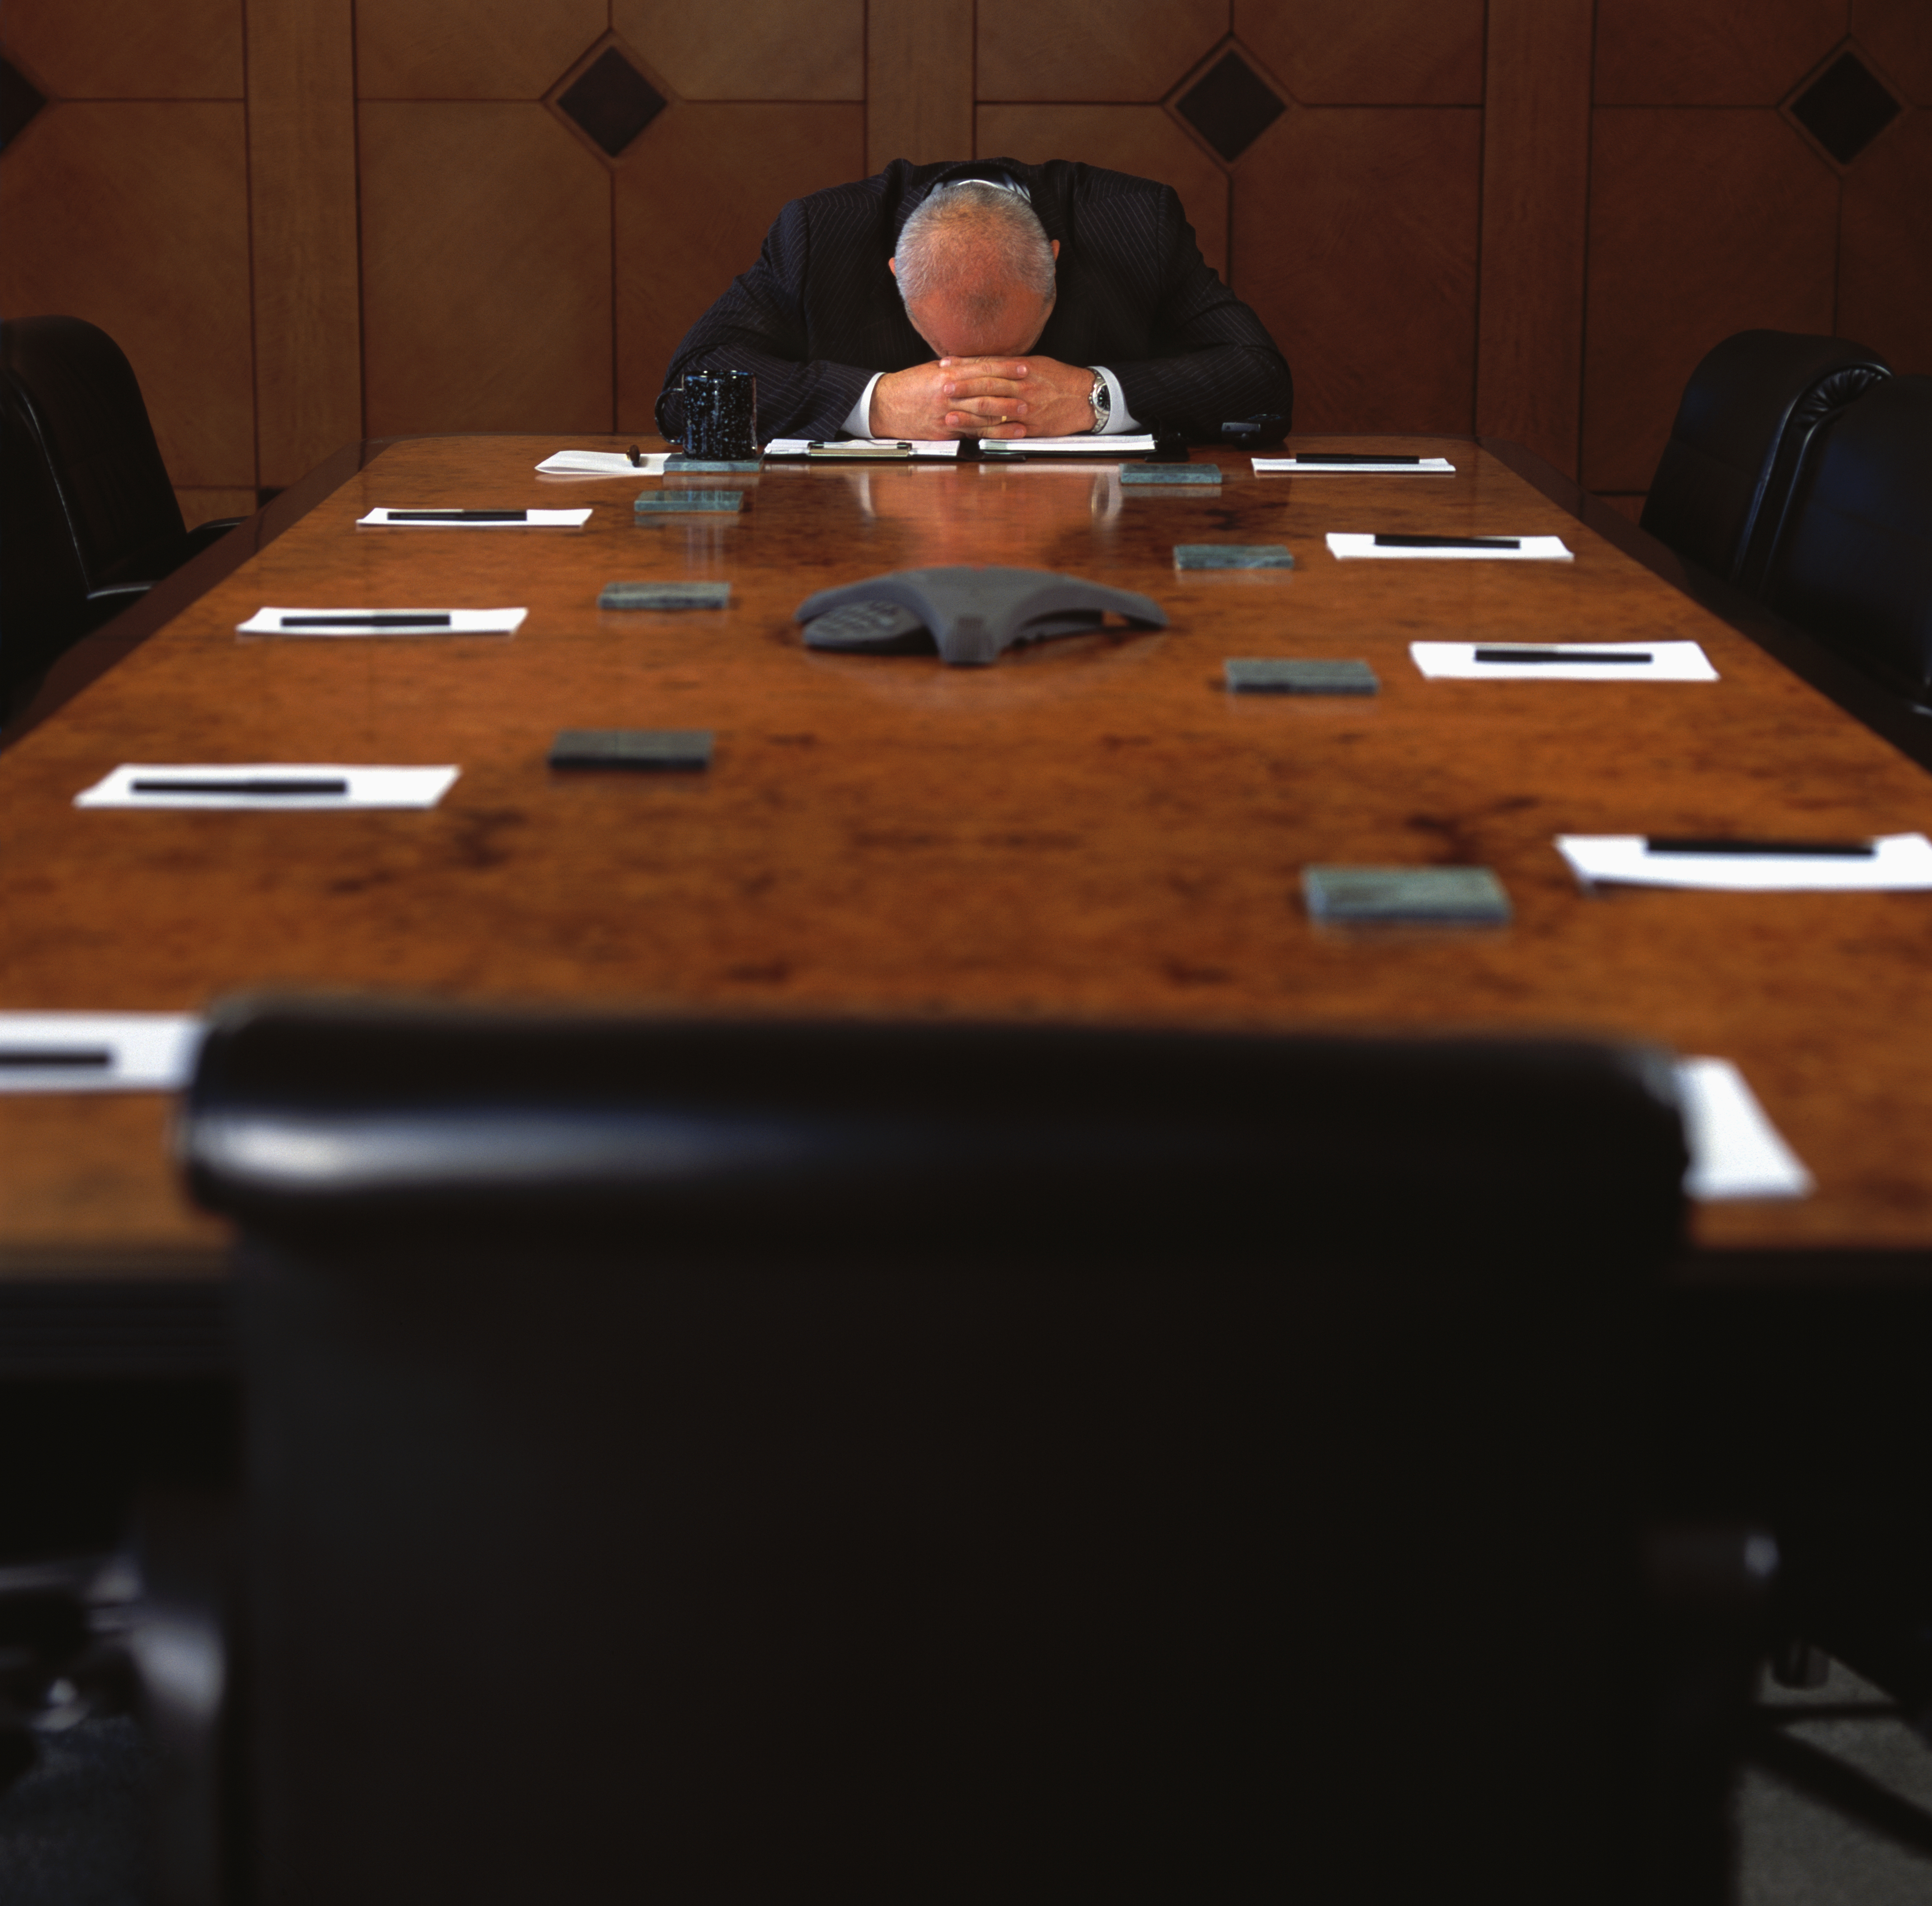 Man Sitting at Empty Conference Table with His Head Down